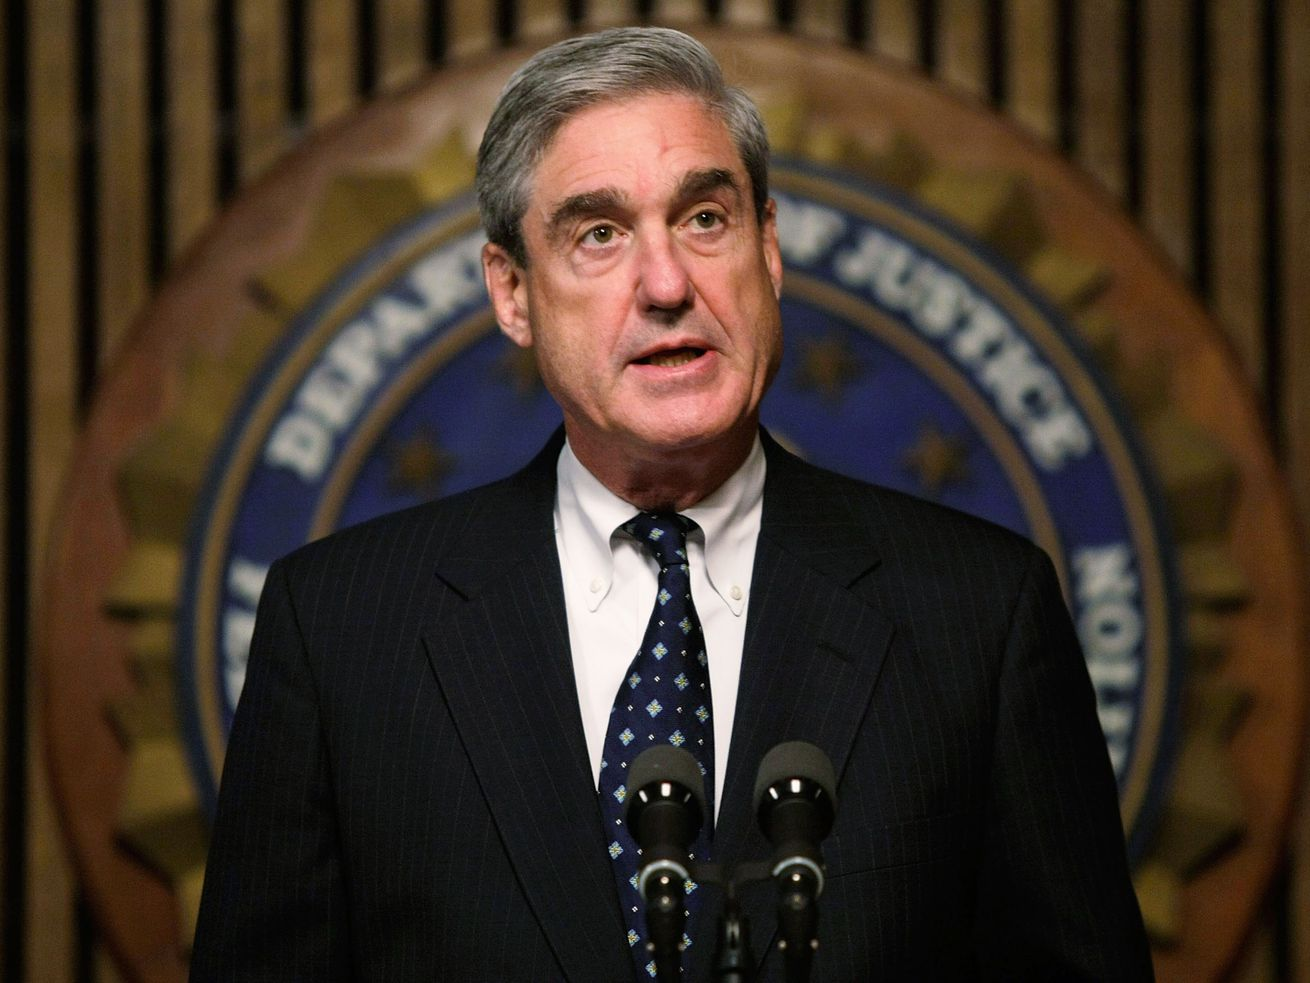 Special counsel Robert Mueller just released an indictment against 12 Russian intelligence officers.